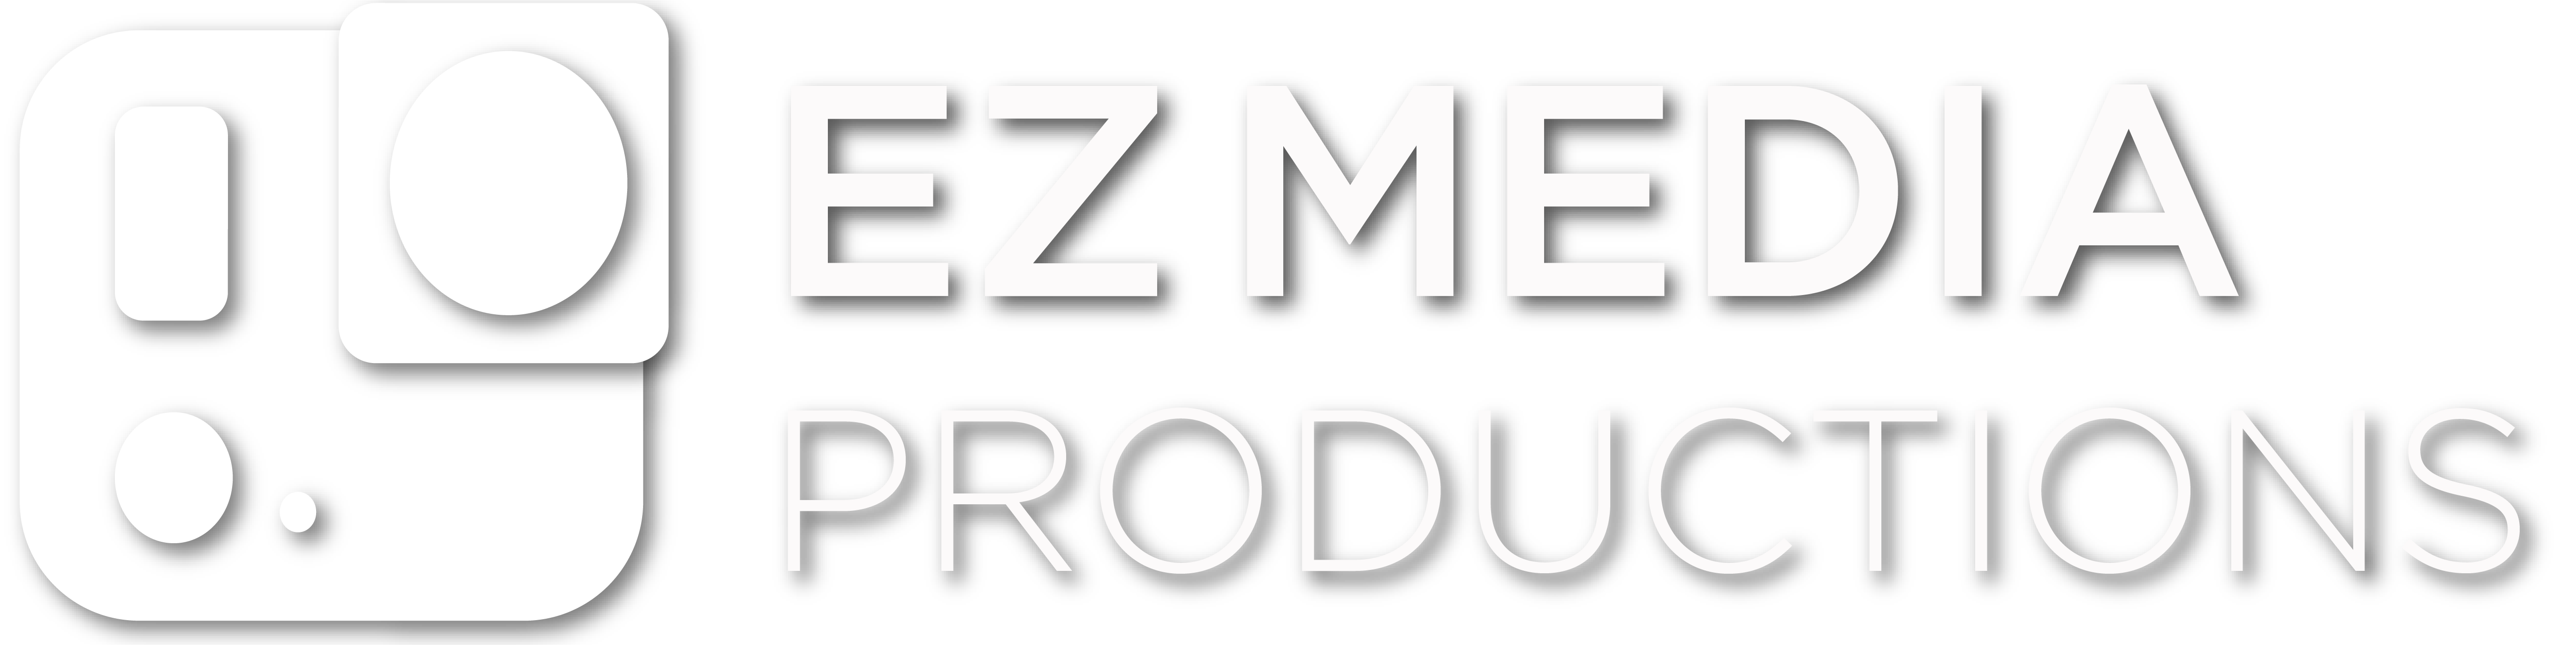 EZ MEDIA PRODUCTIONS